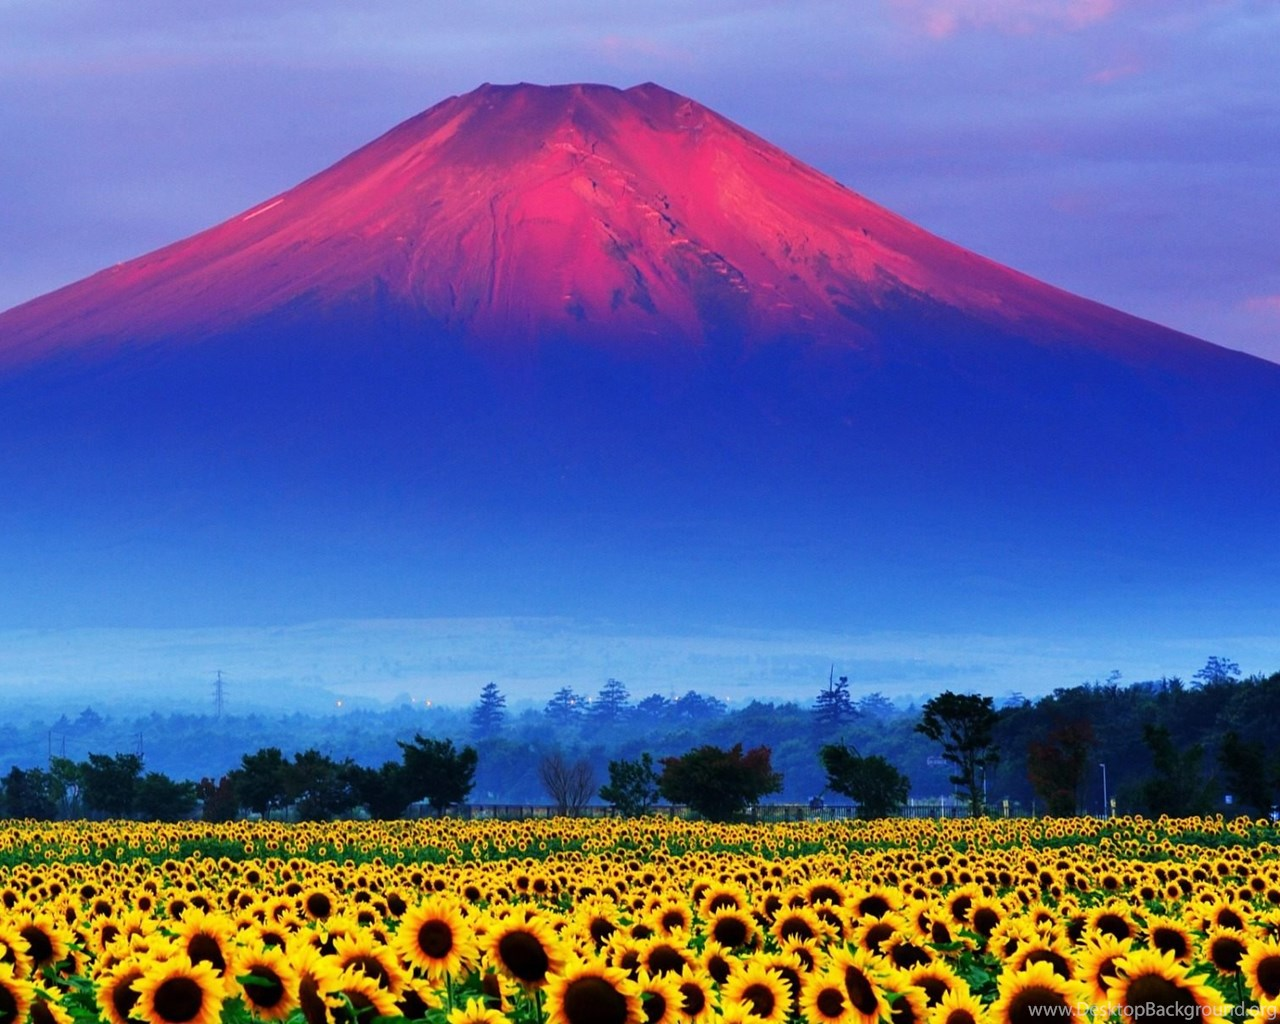 Fuji mountain japan landscape wallpapers hd free download - Free download hd wallpapers for pc 1280x1024 ...